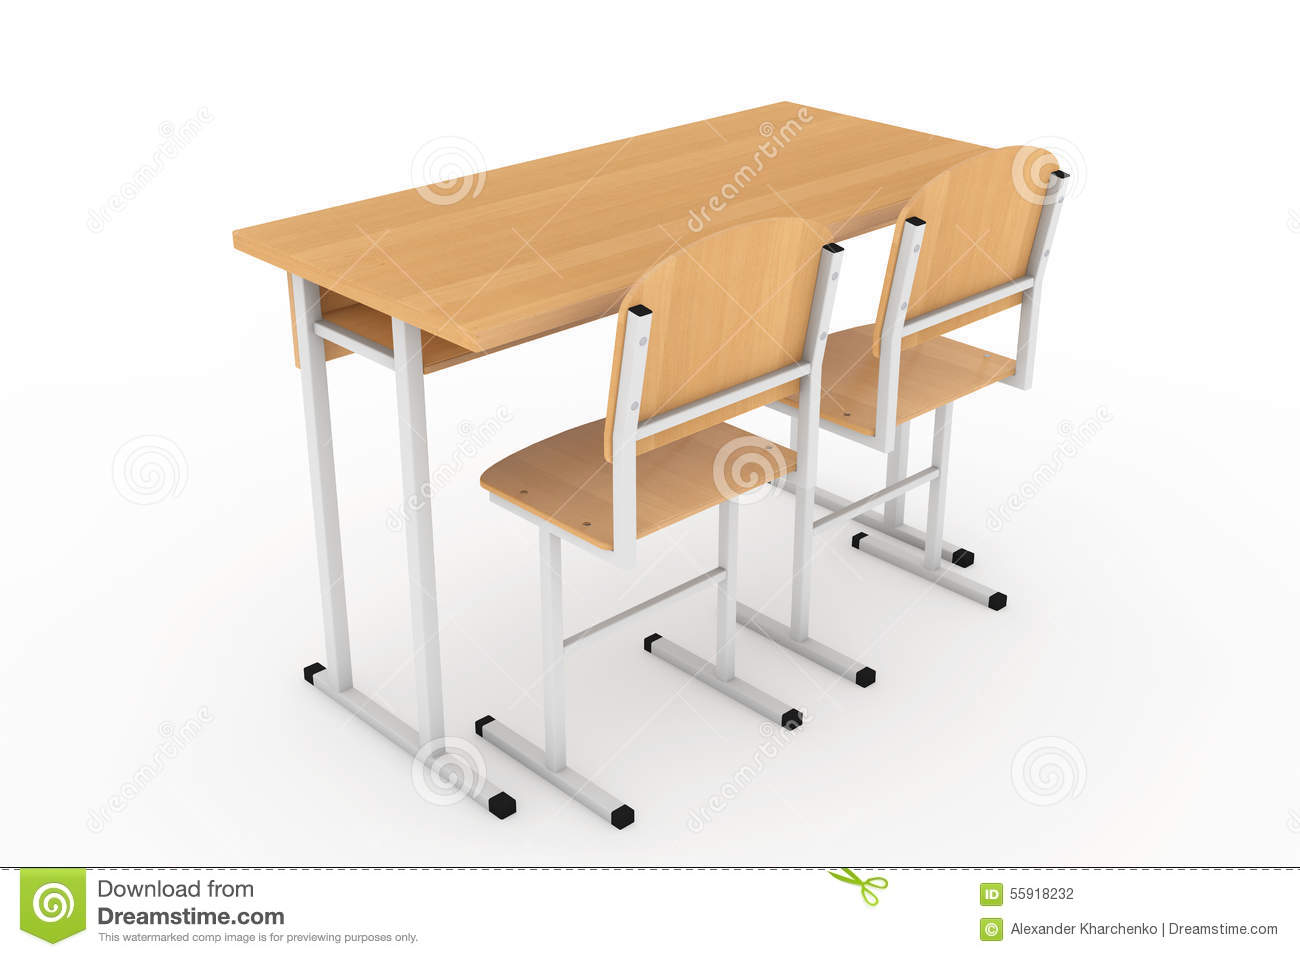 School Desk and Chairs on a white background. School Desk Background